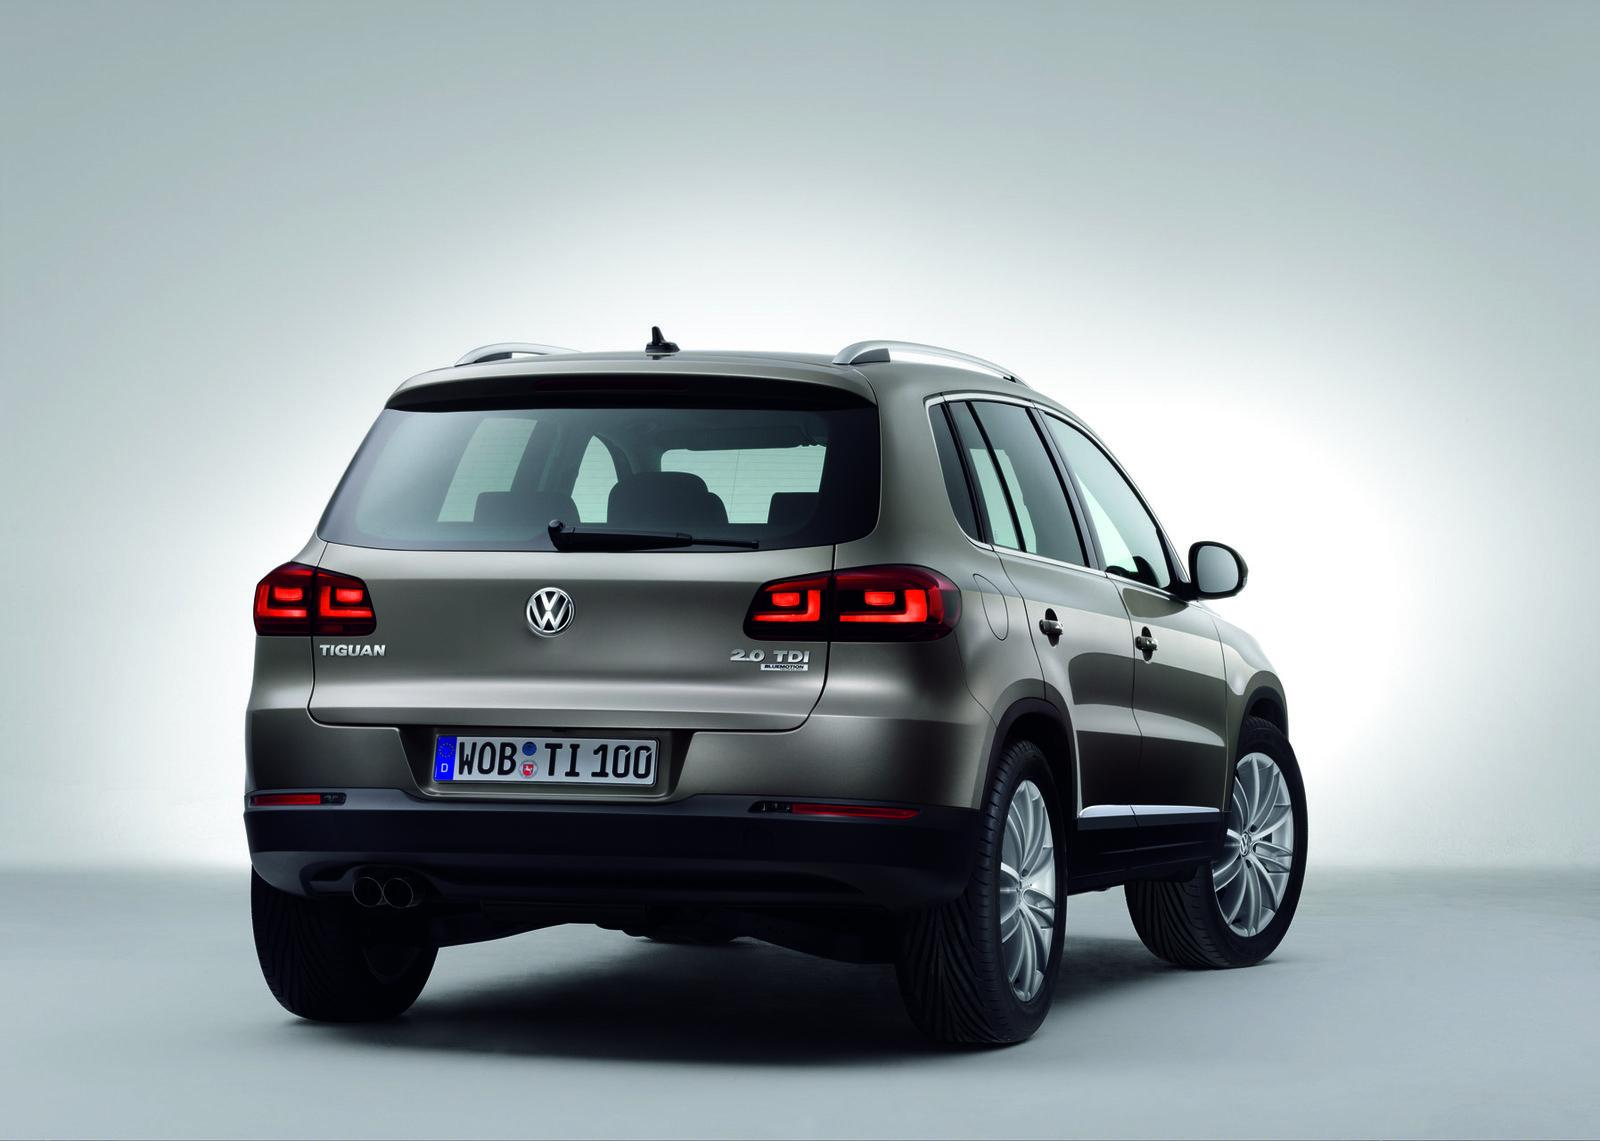 VW Passat and Tiguan 11 VW to Upgrade Passat and Tiguan in North America